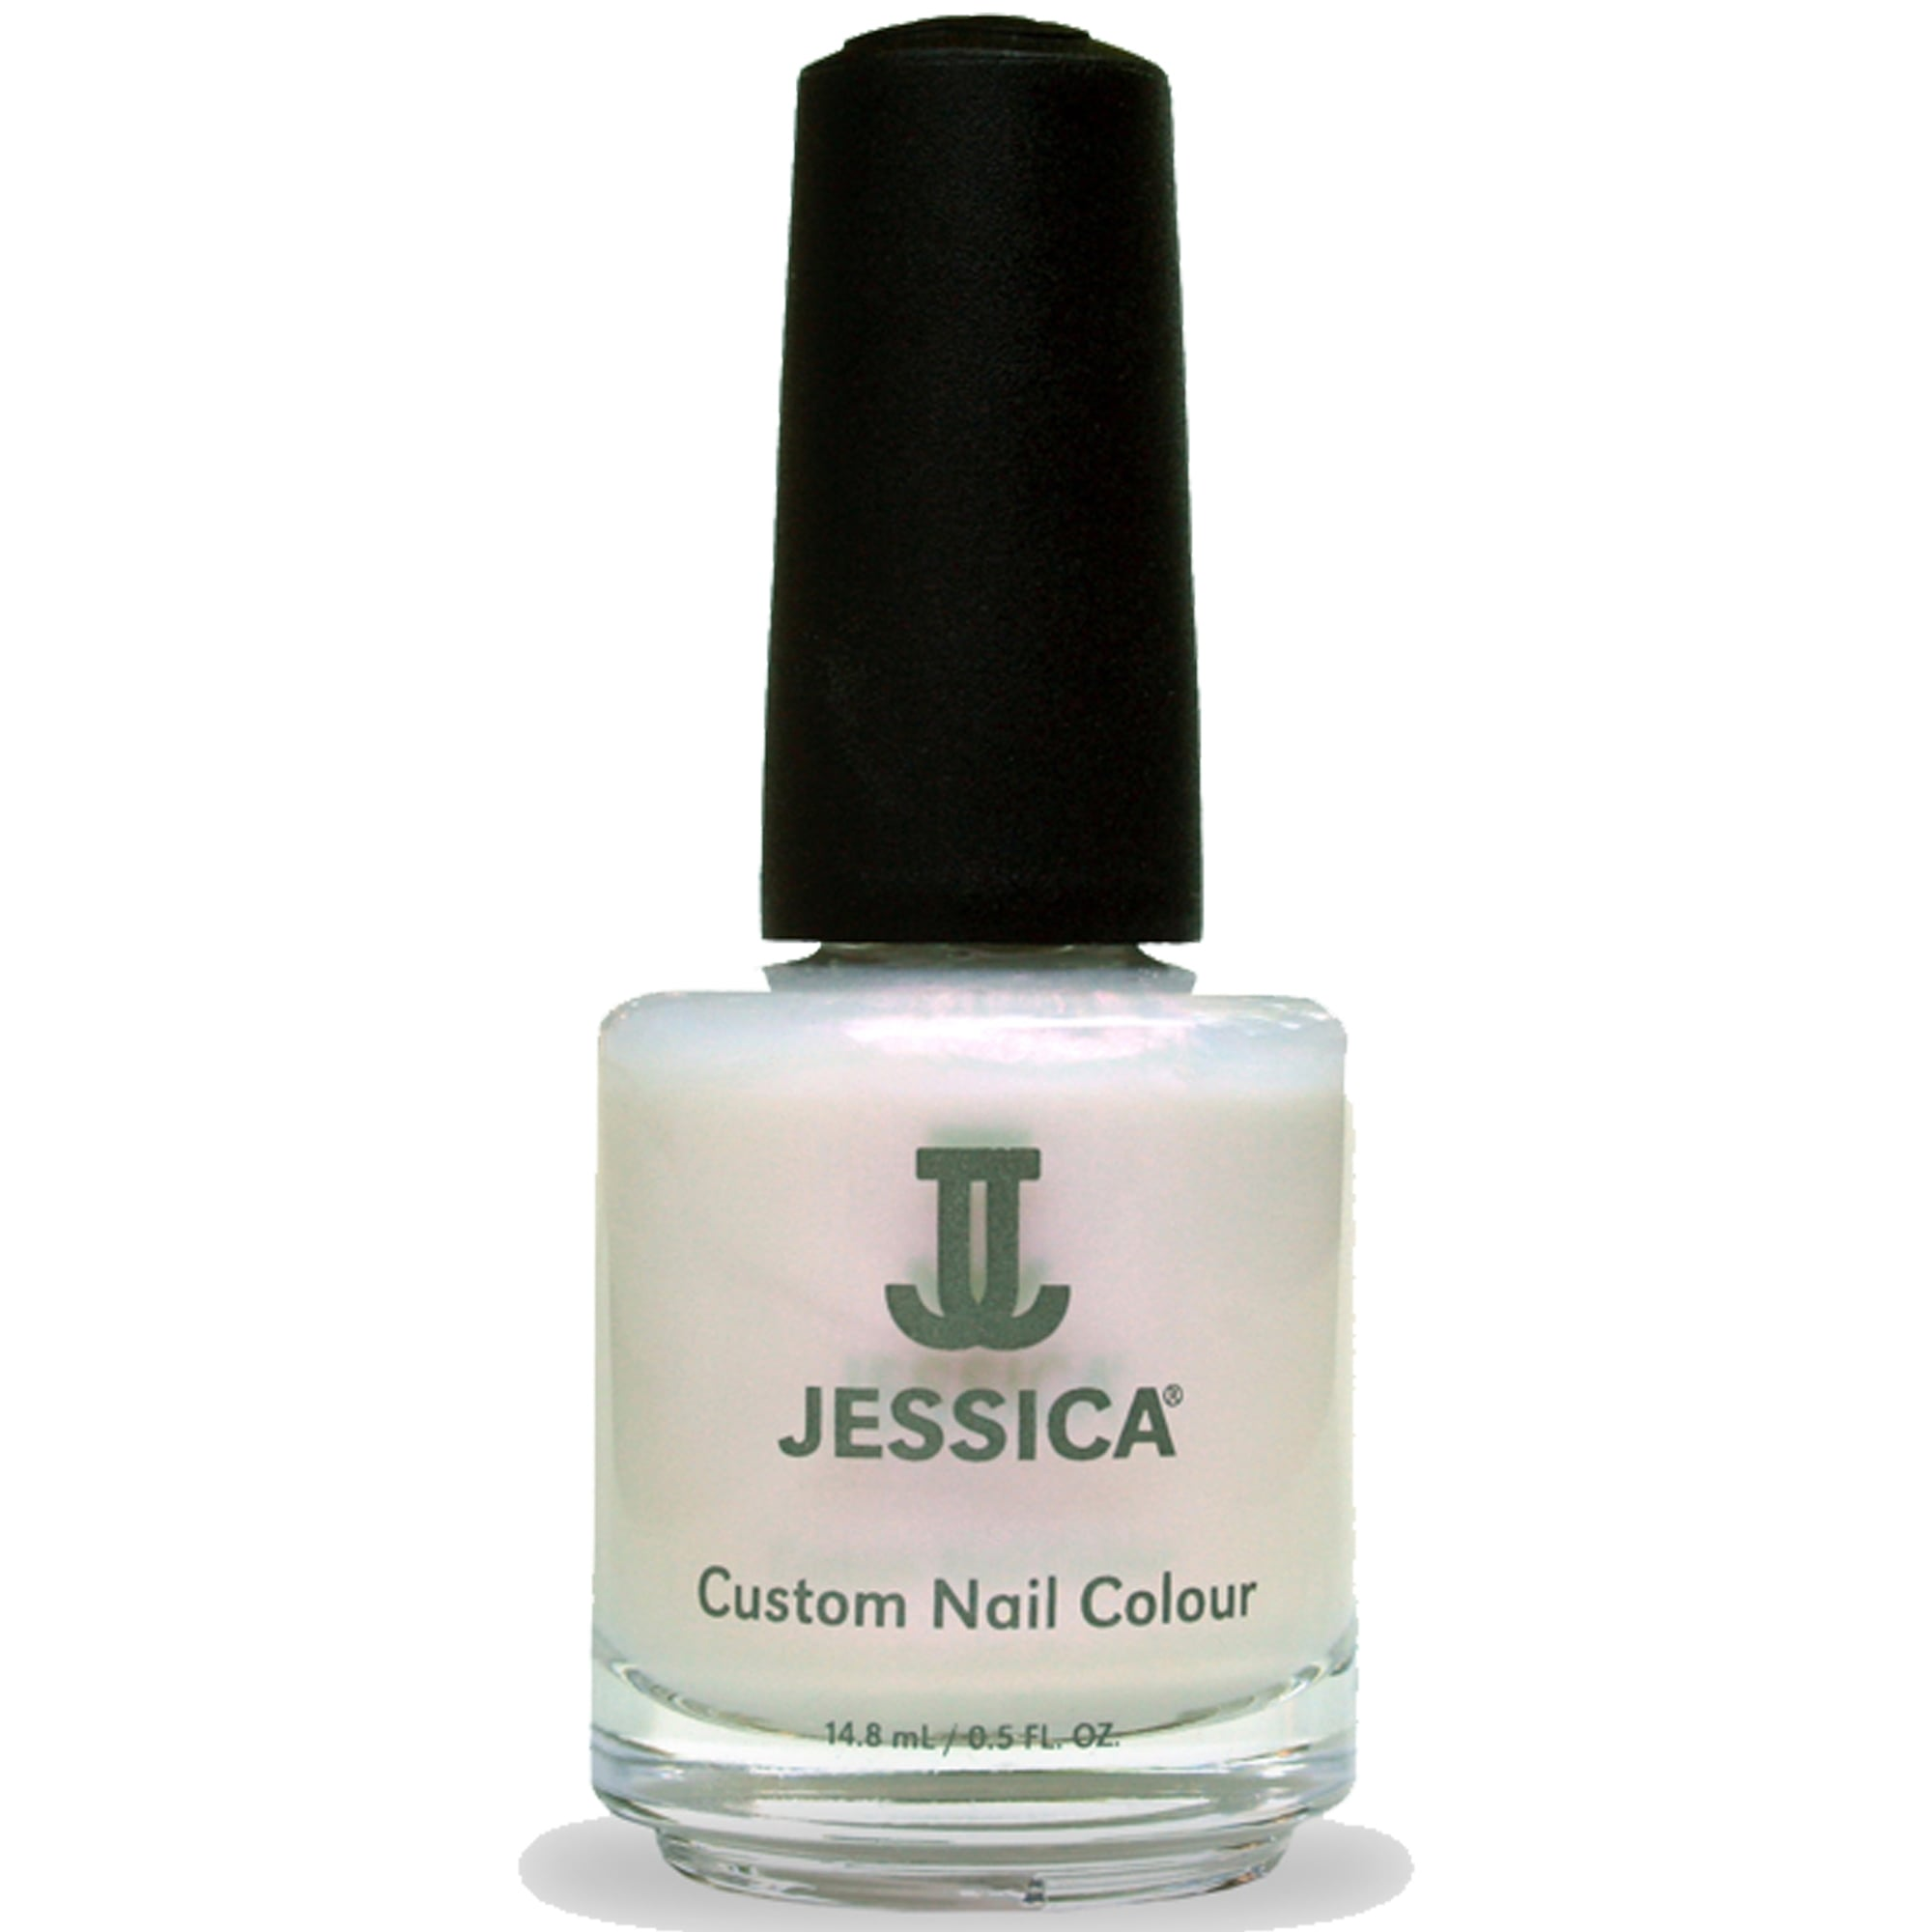 Jessica Chic Nail Polish is available online at Nail Polish Direct